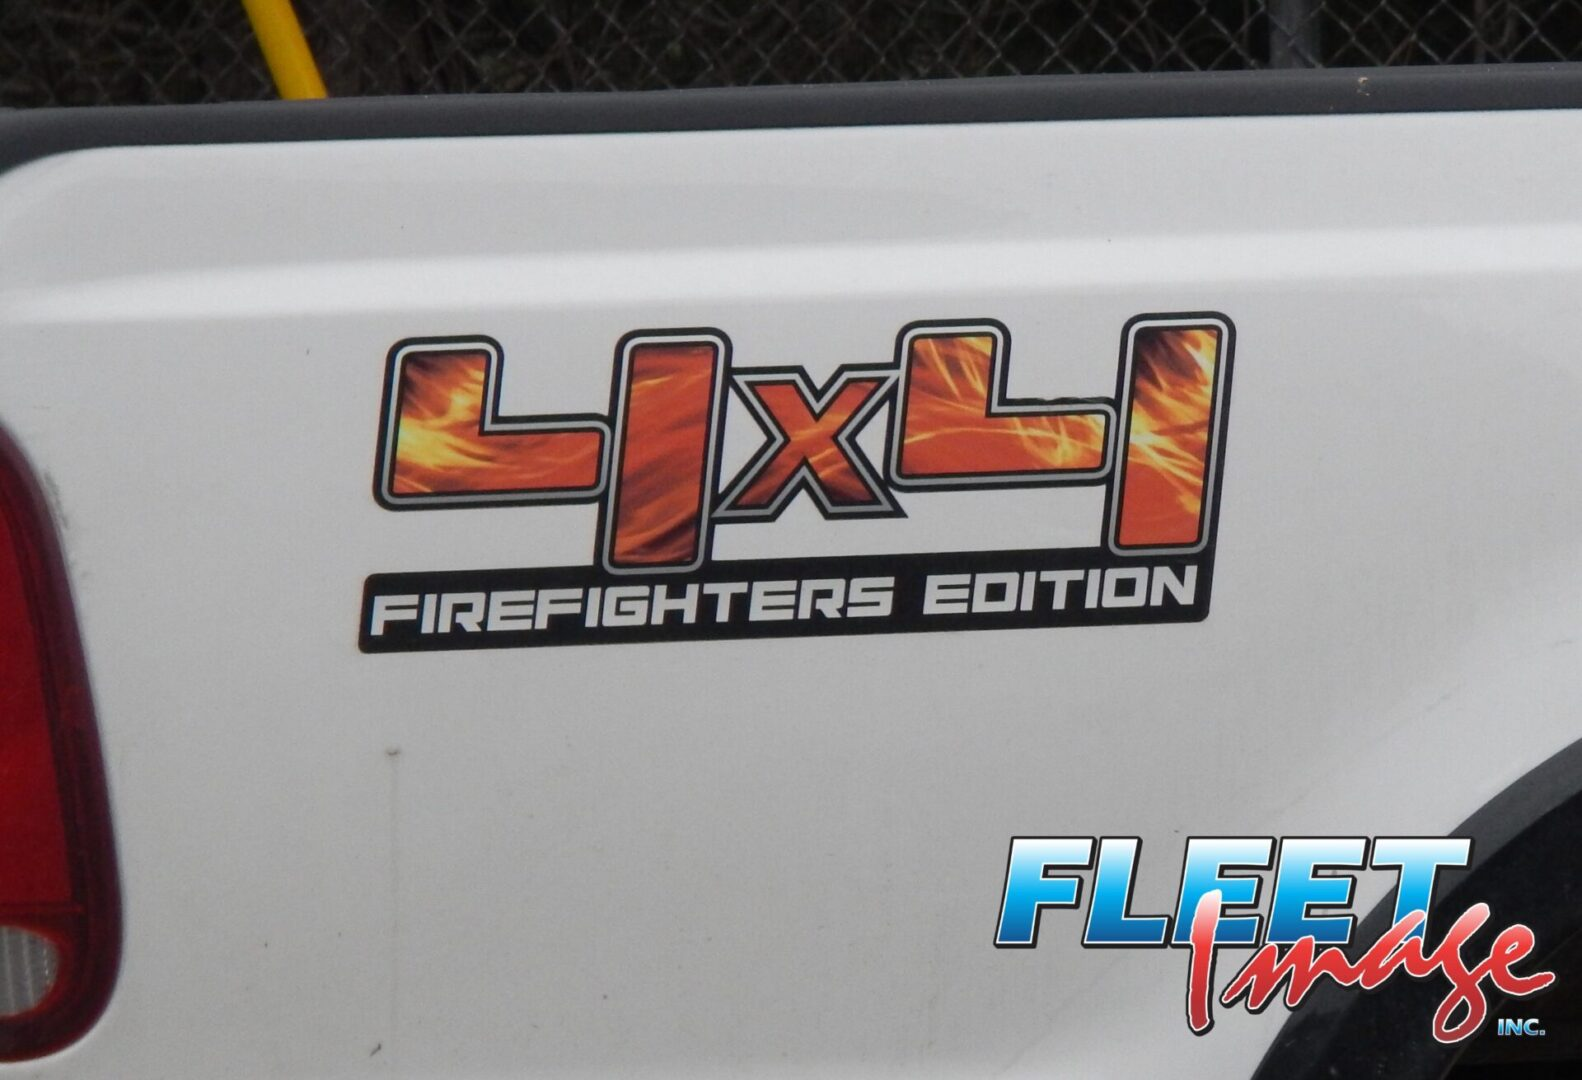 4X4 FIREFIGHTERS EDITION sticker on a vehicle